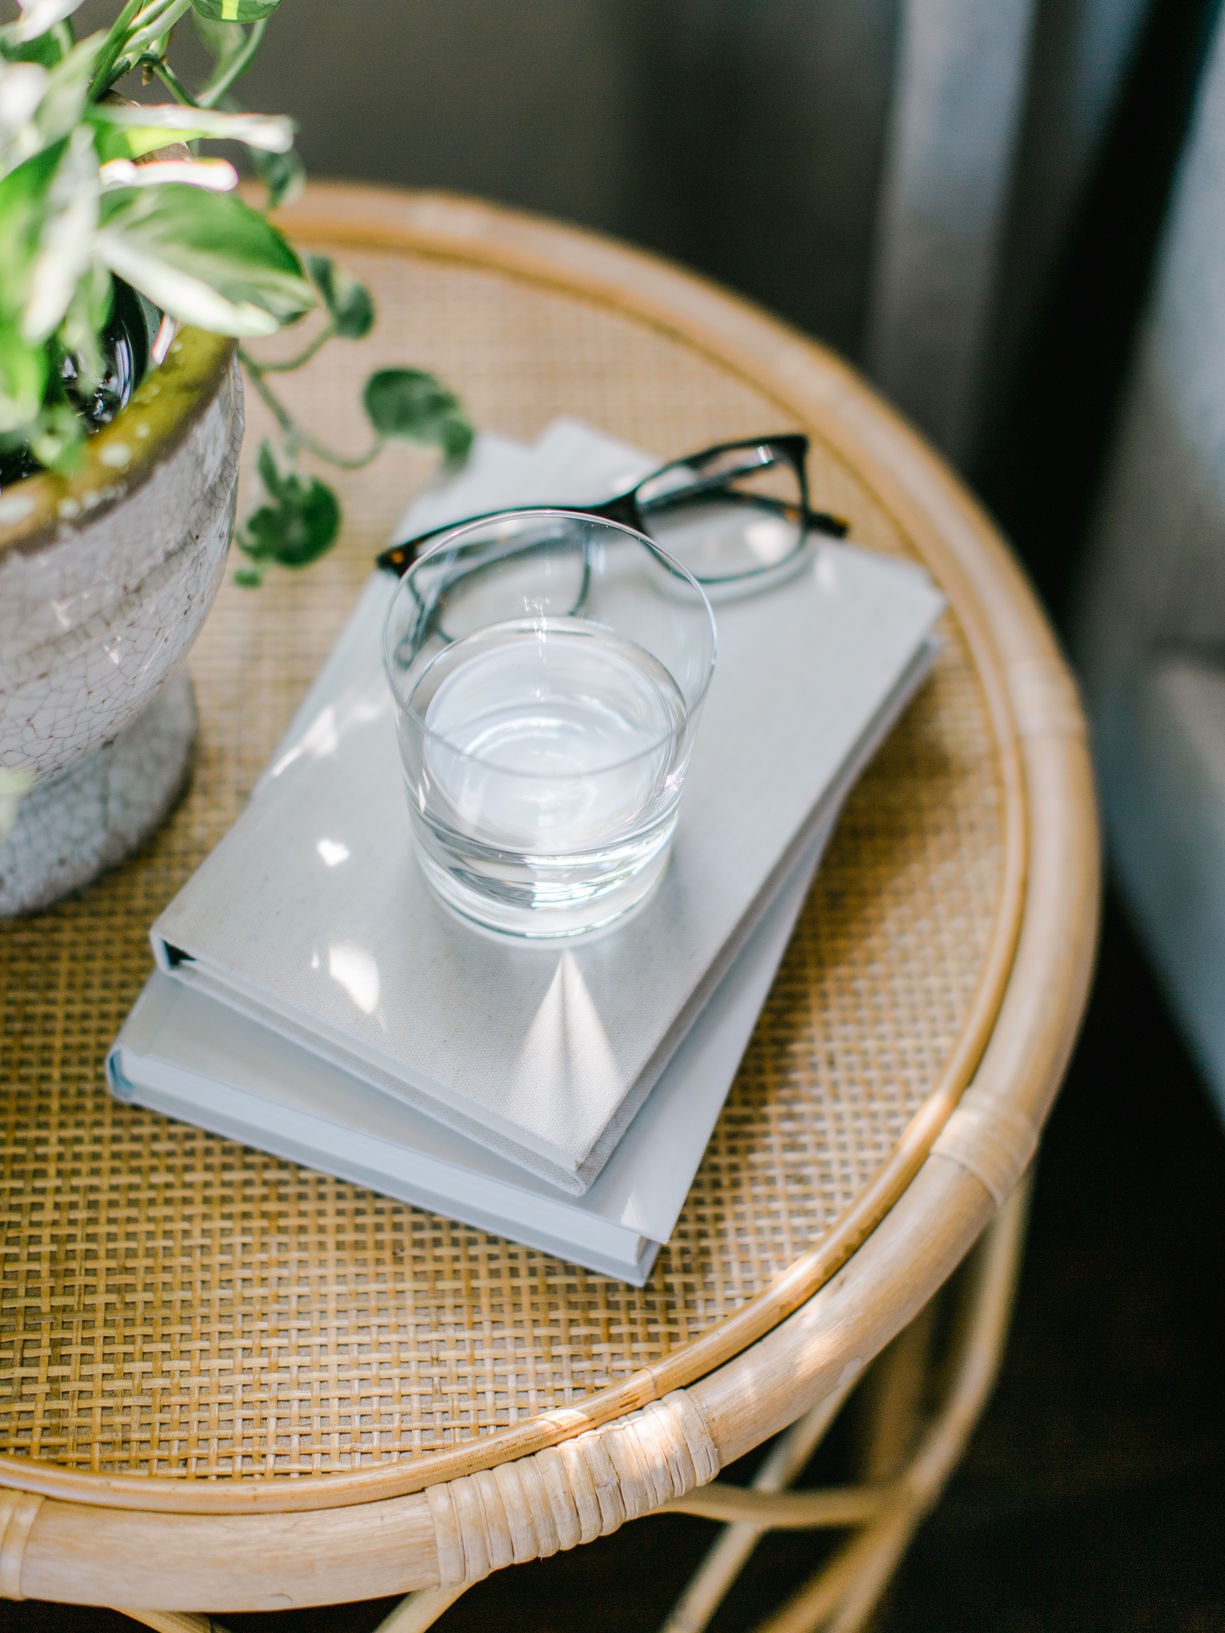 Reading Glasses On Table